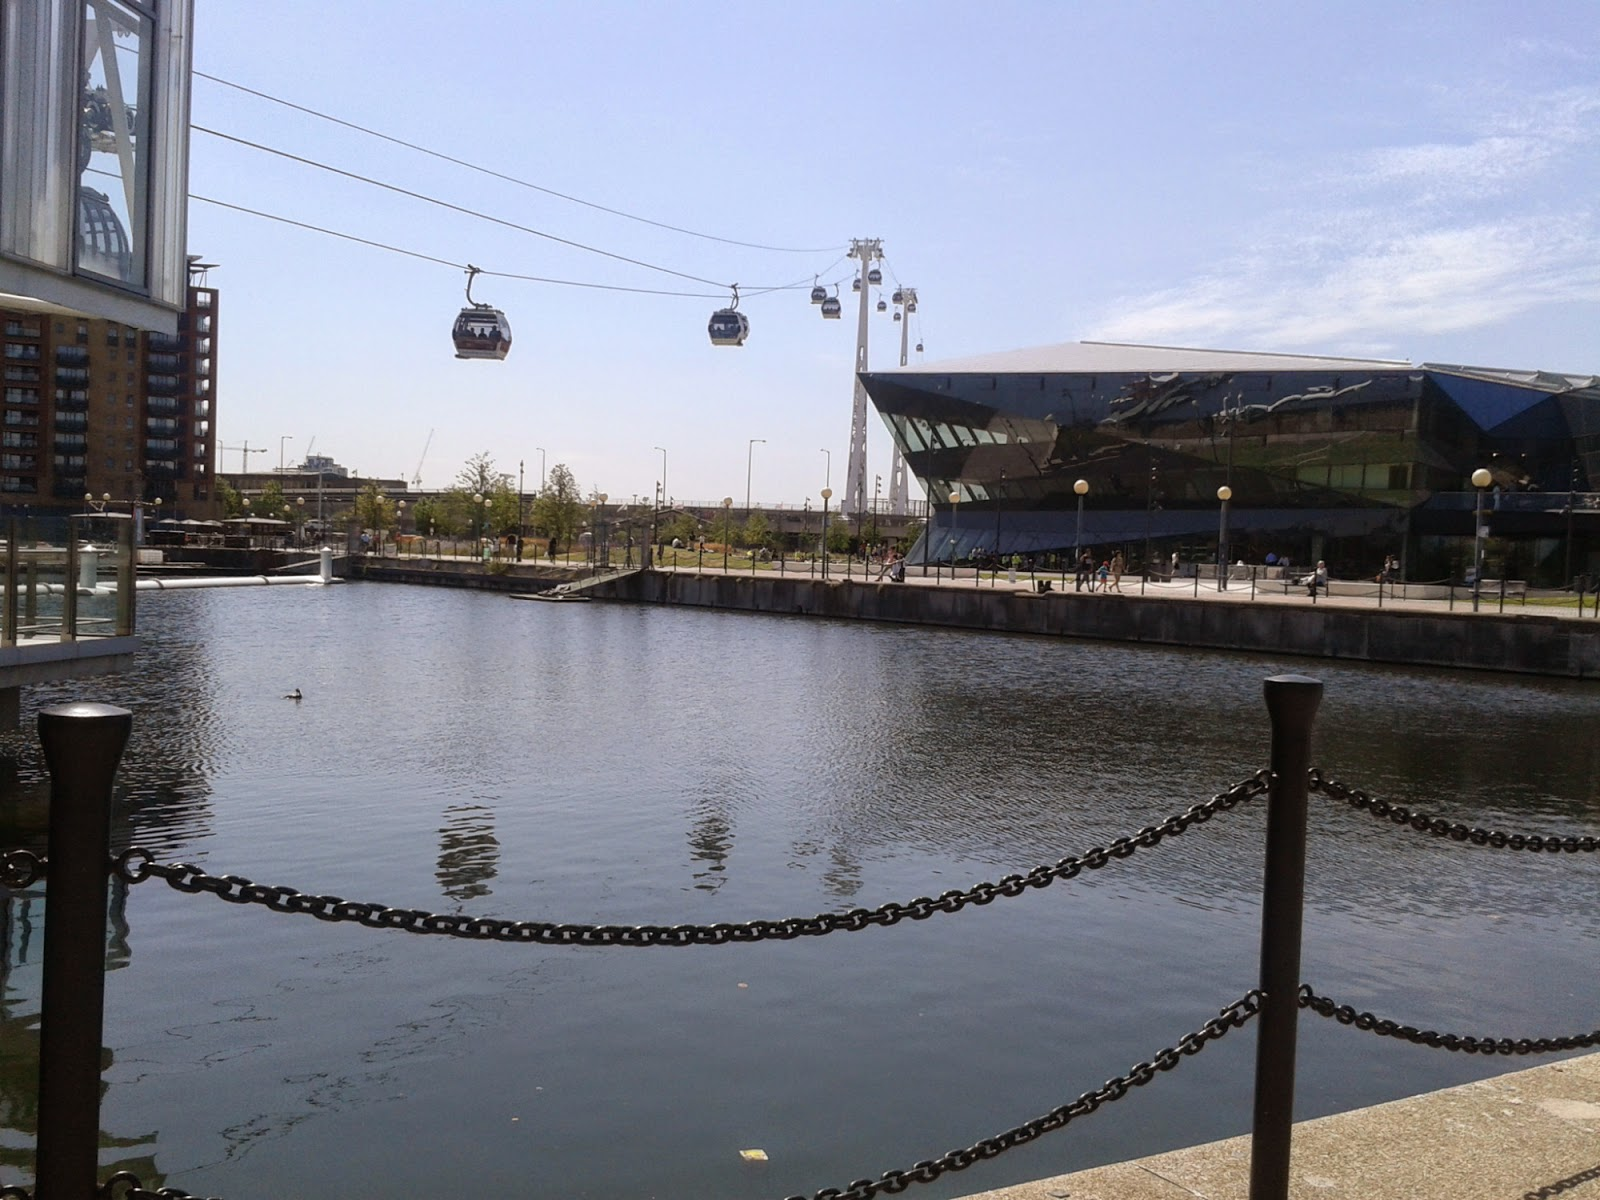 A shot of the emirates cable cars overlooking Greenwich